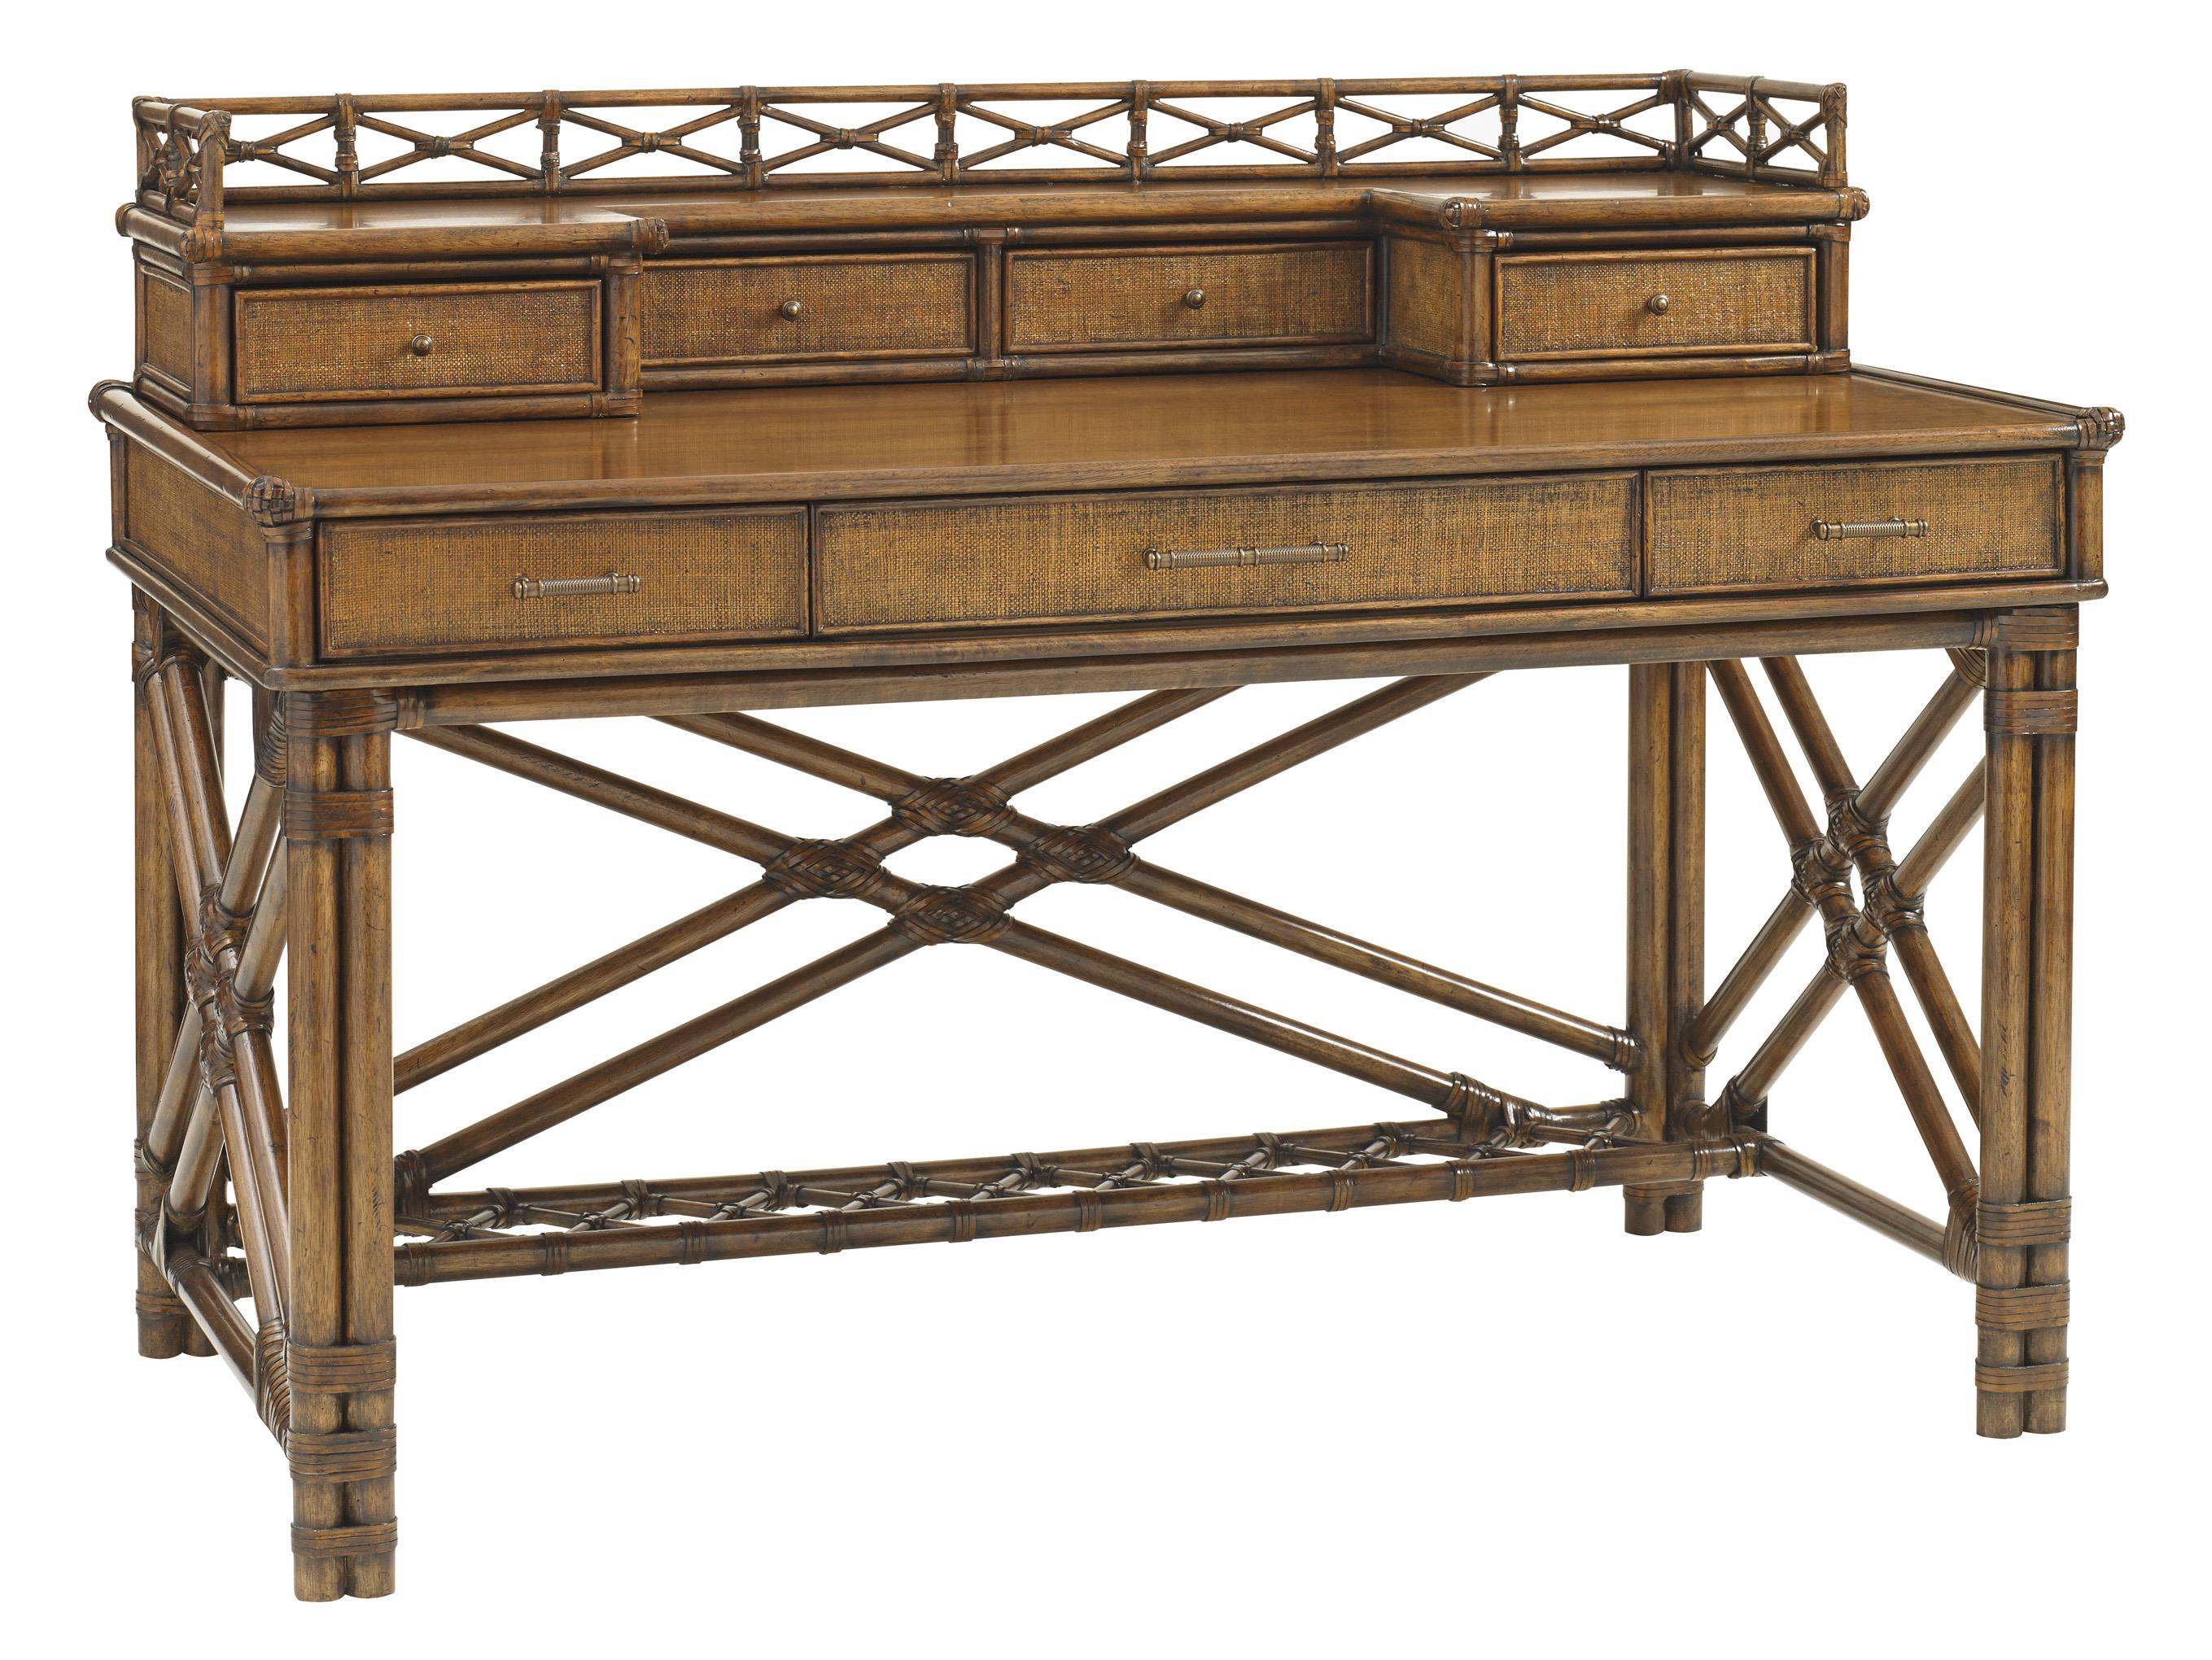 Tommy Bahama Home Bali Hai Enchanted Isle Desk and Box of Drawers - Item Number: 593-933+933B